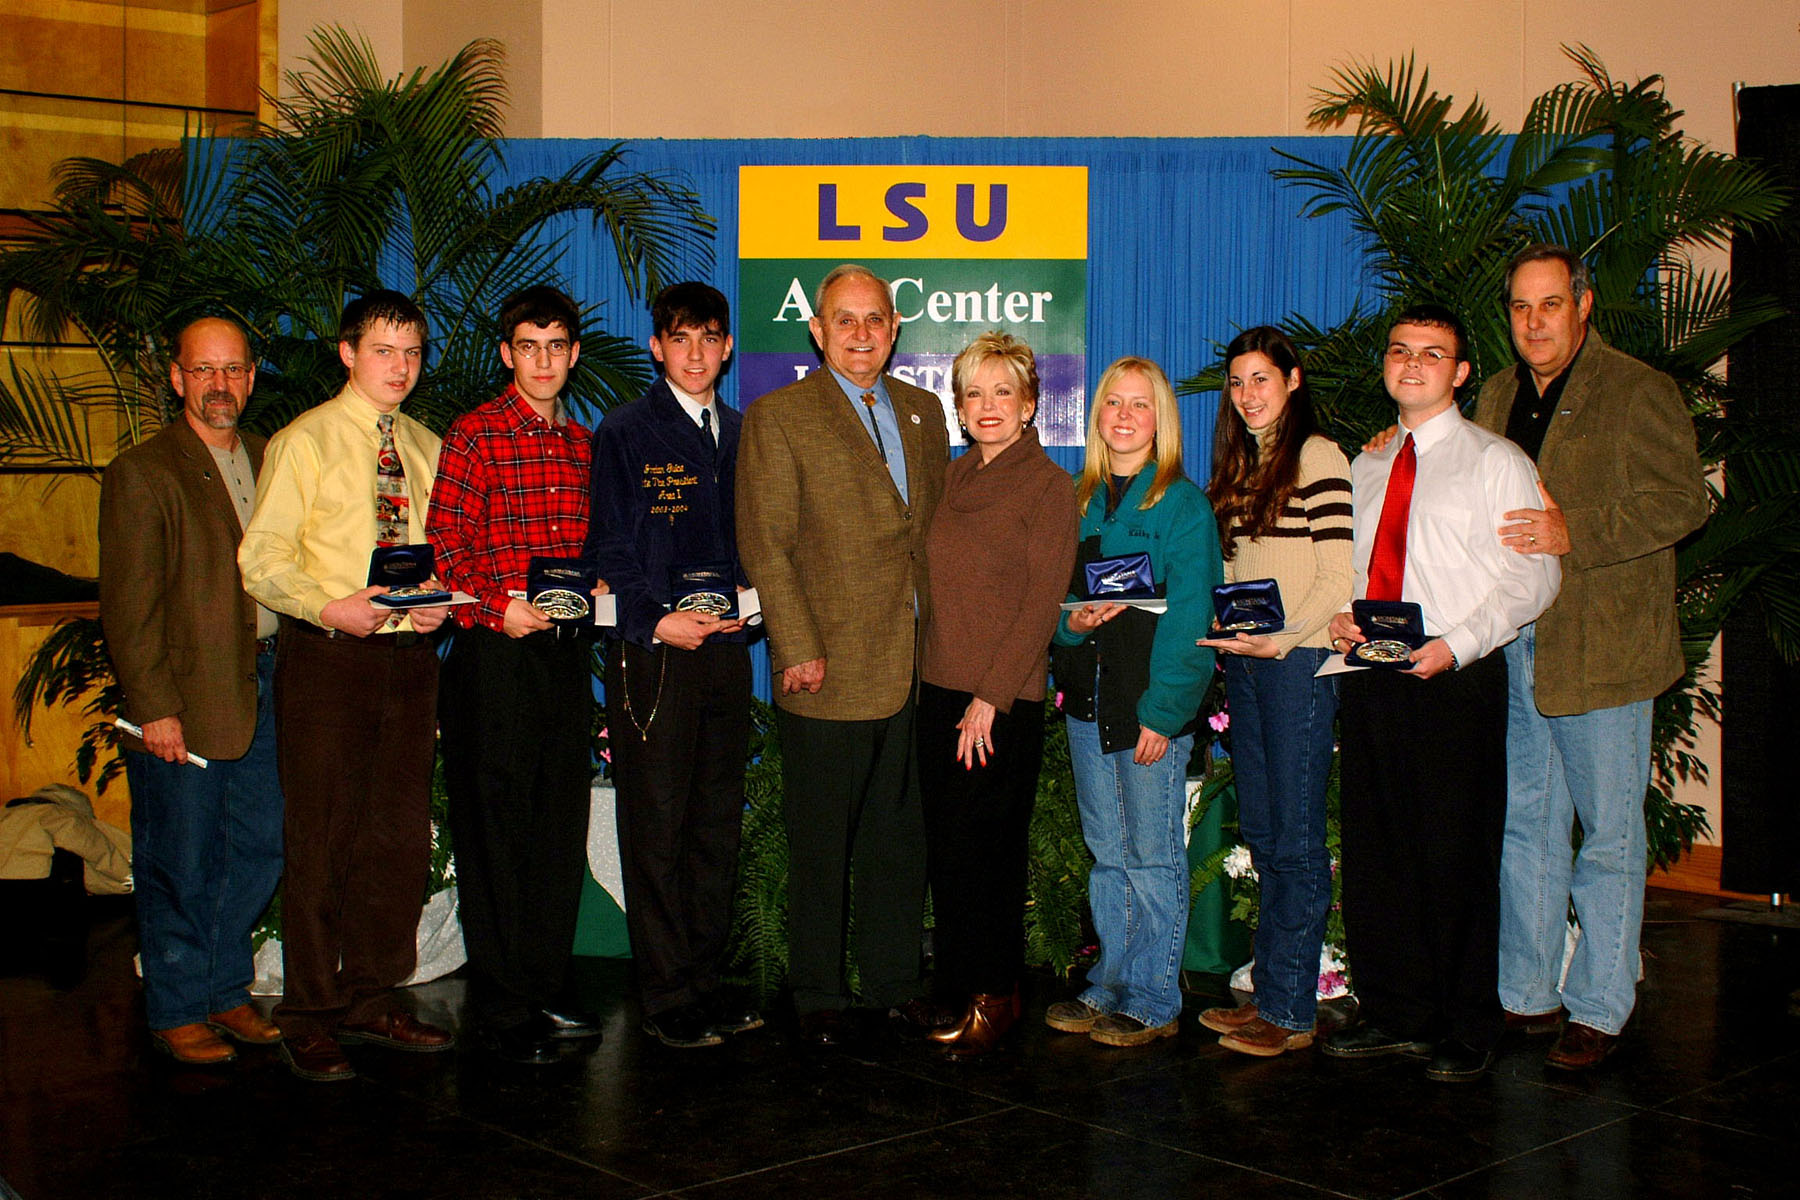 Premier Exhibitor Honors Awarded At LSU AgCenter Livestock Show